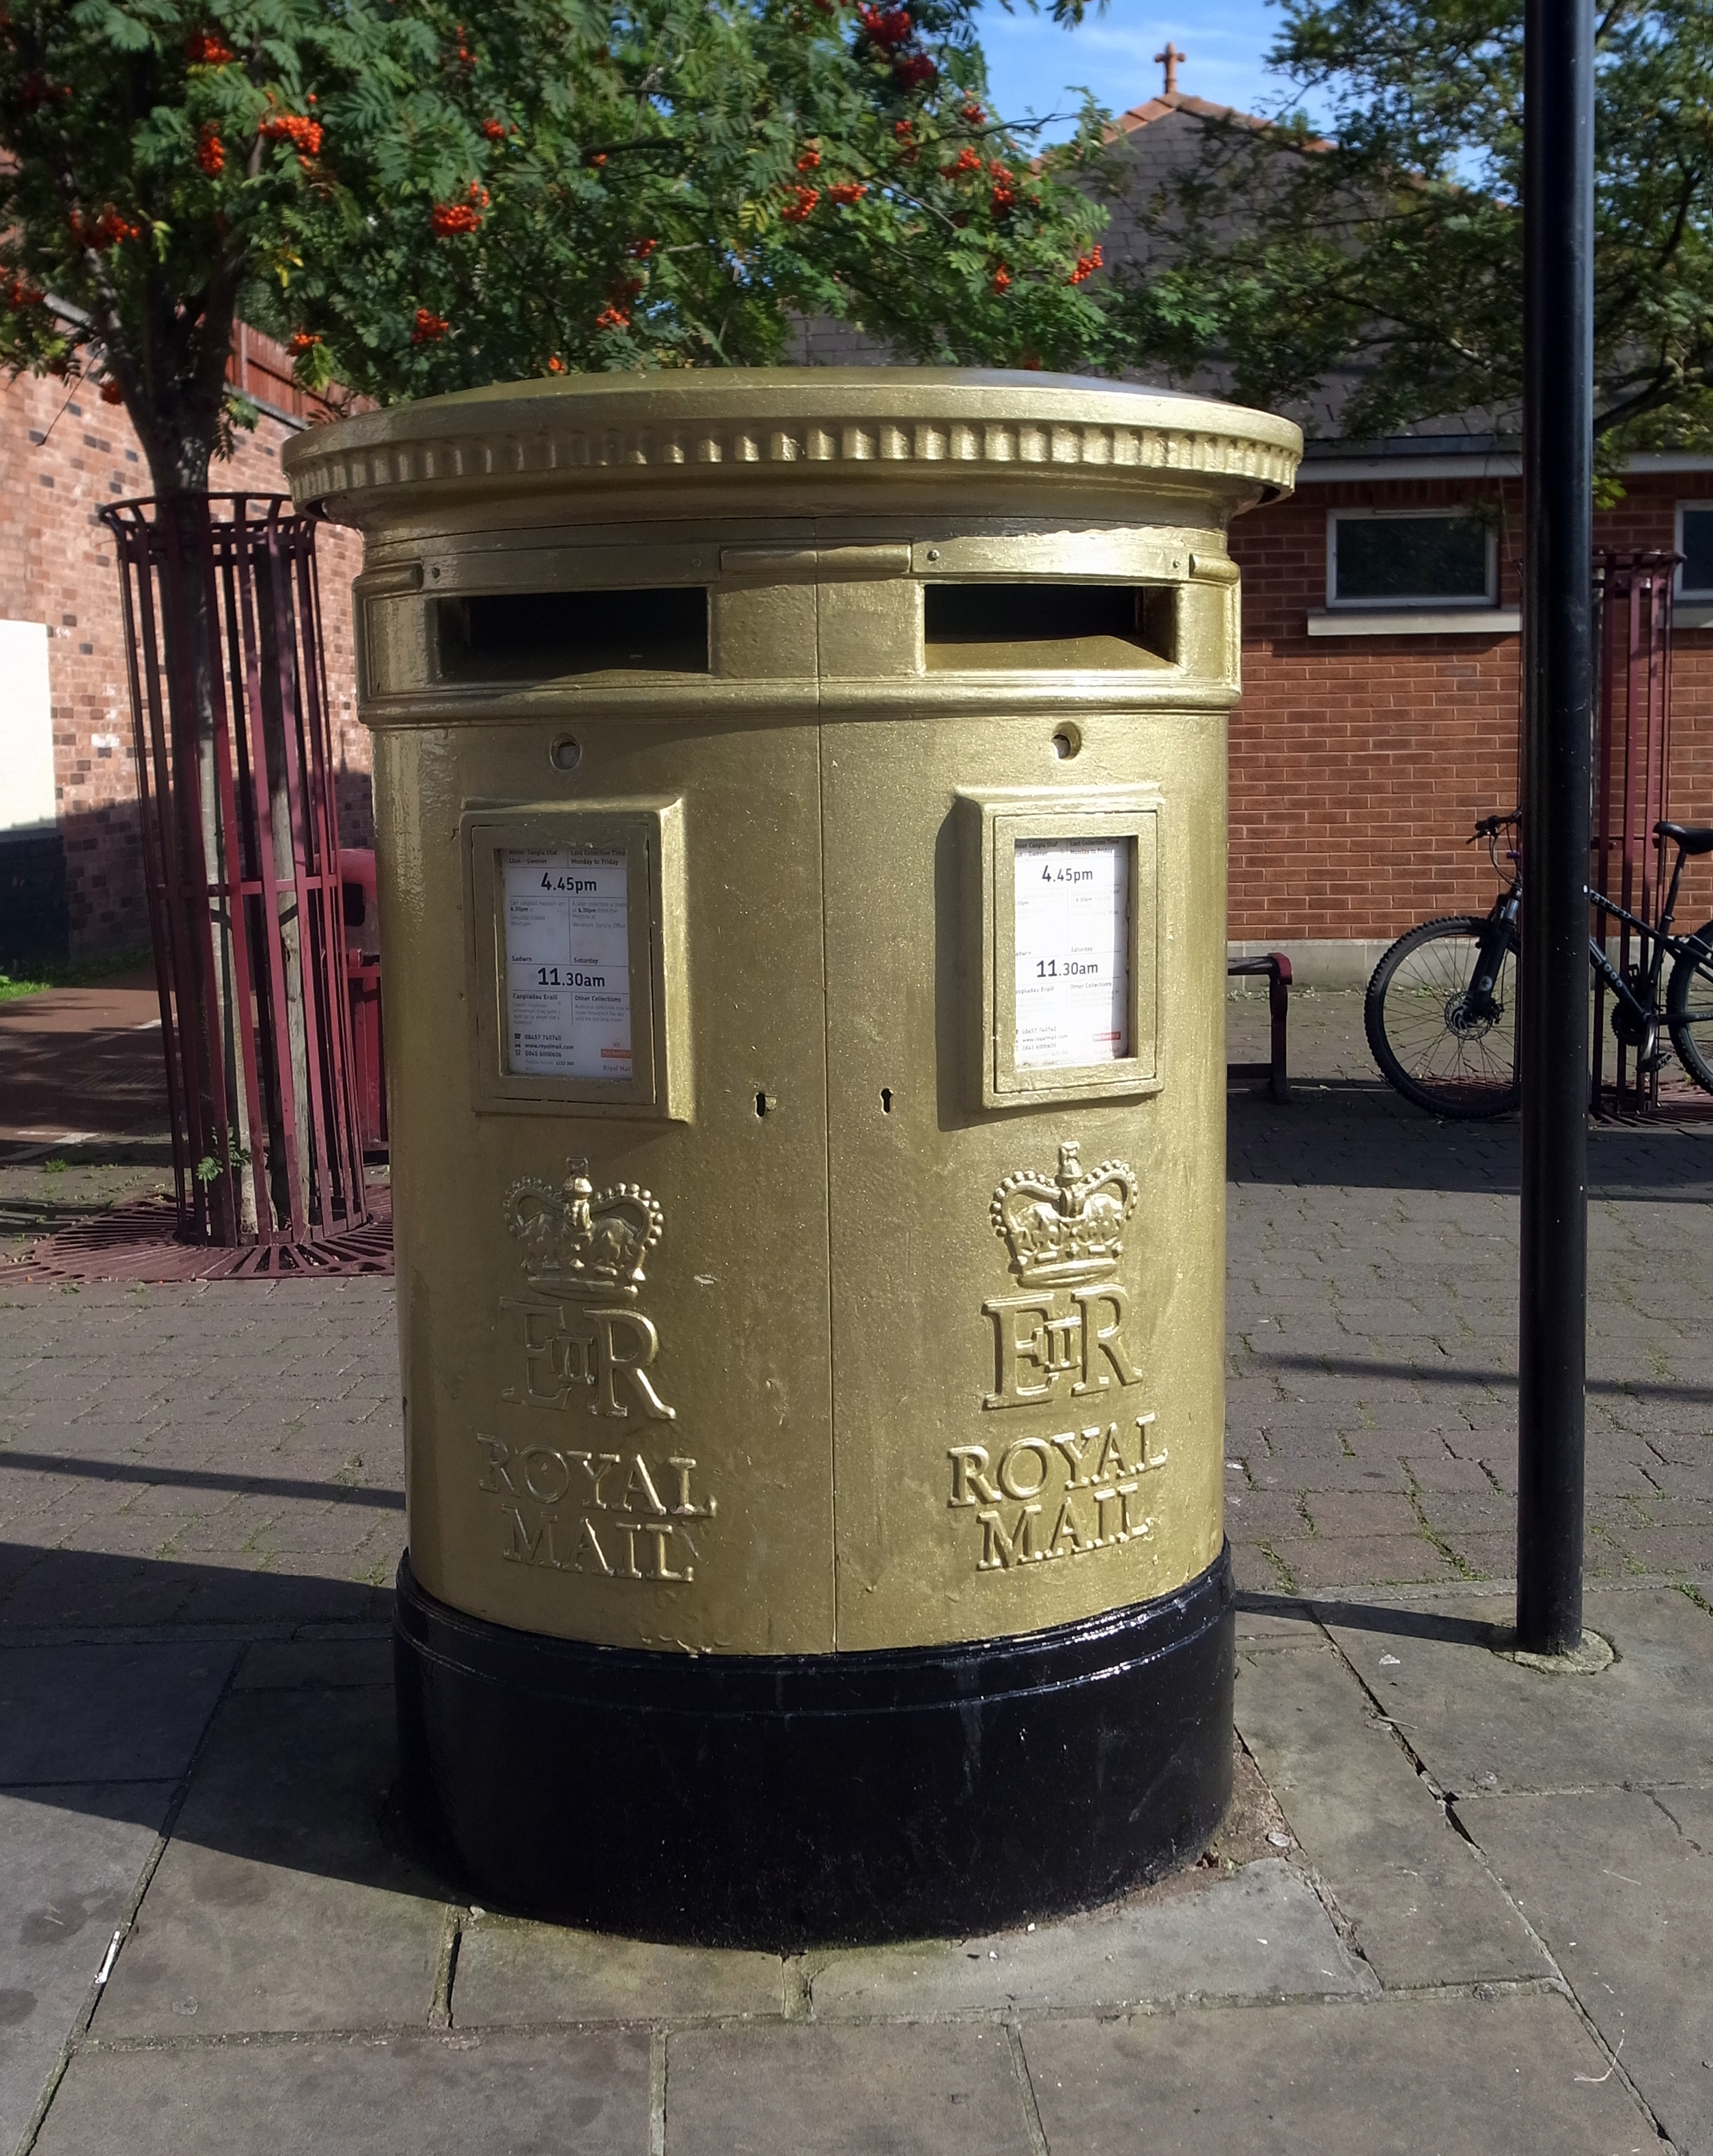 File:Wrexham gold post box.jpg - Wikipedia, the free encyclopedia